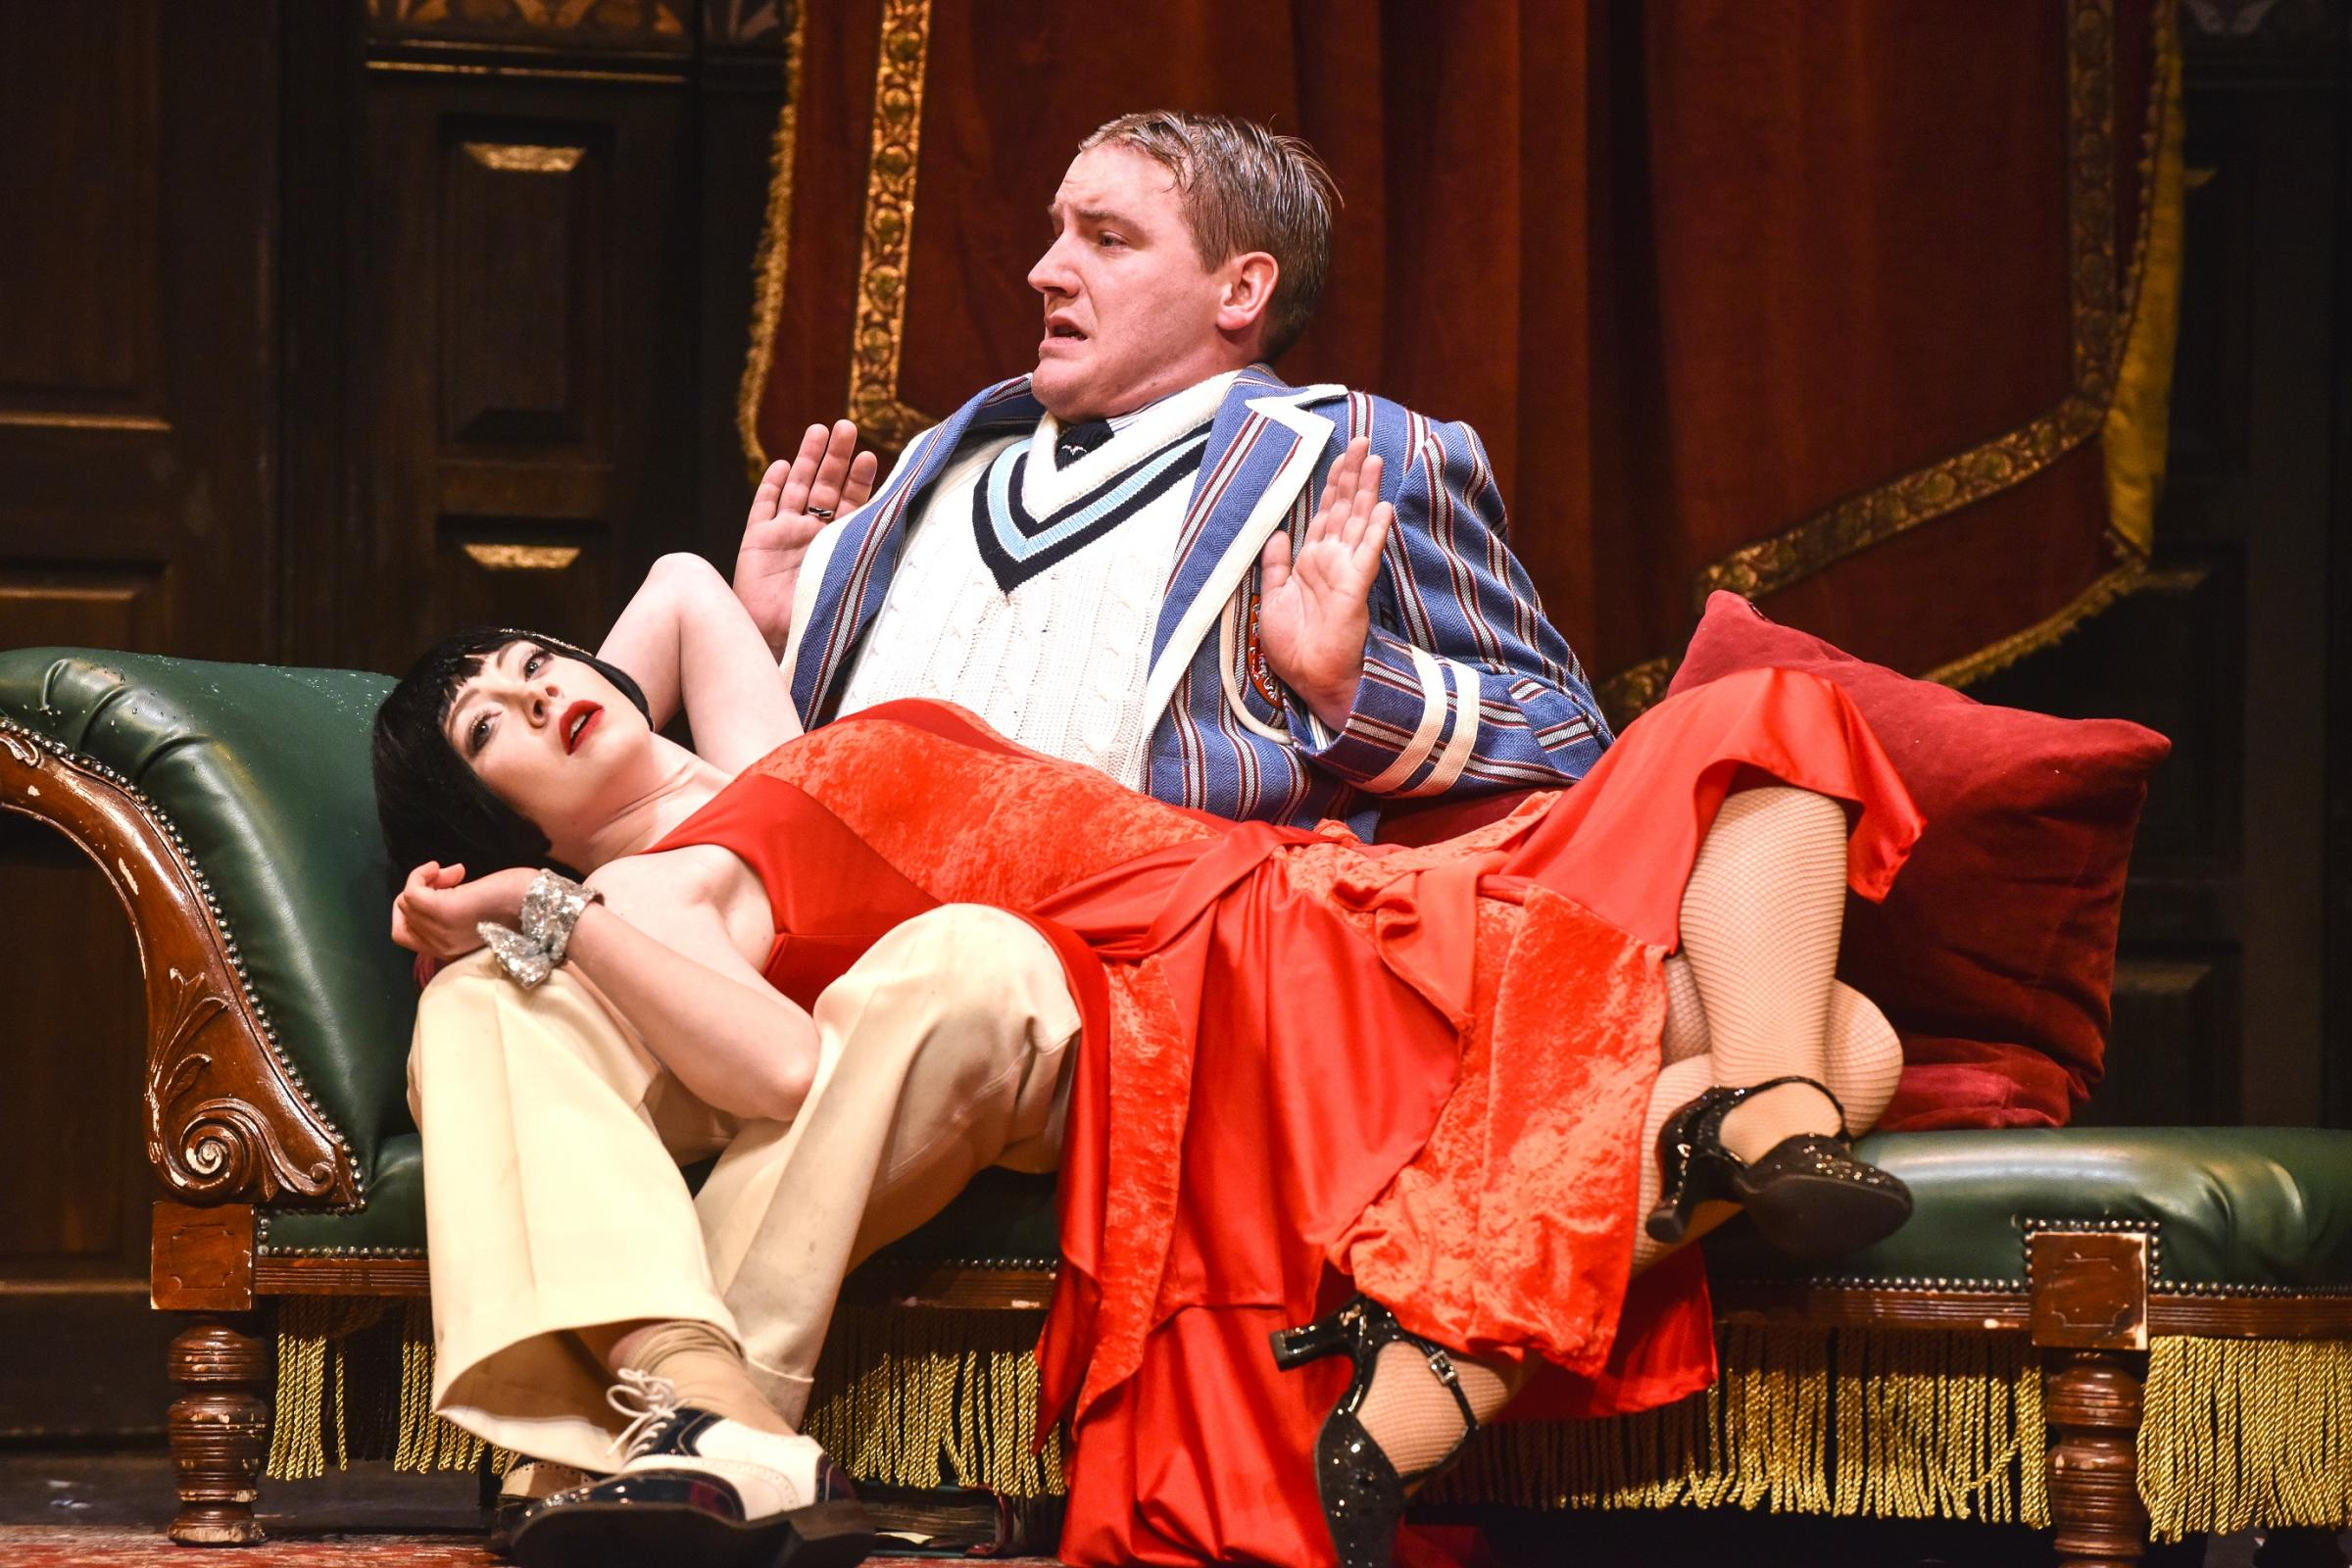 Bobby Hirston's Max and Elena Valentine's Sandra in The Play That Goes Wrong